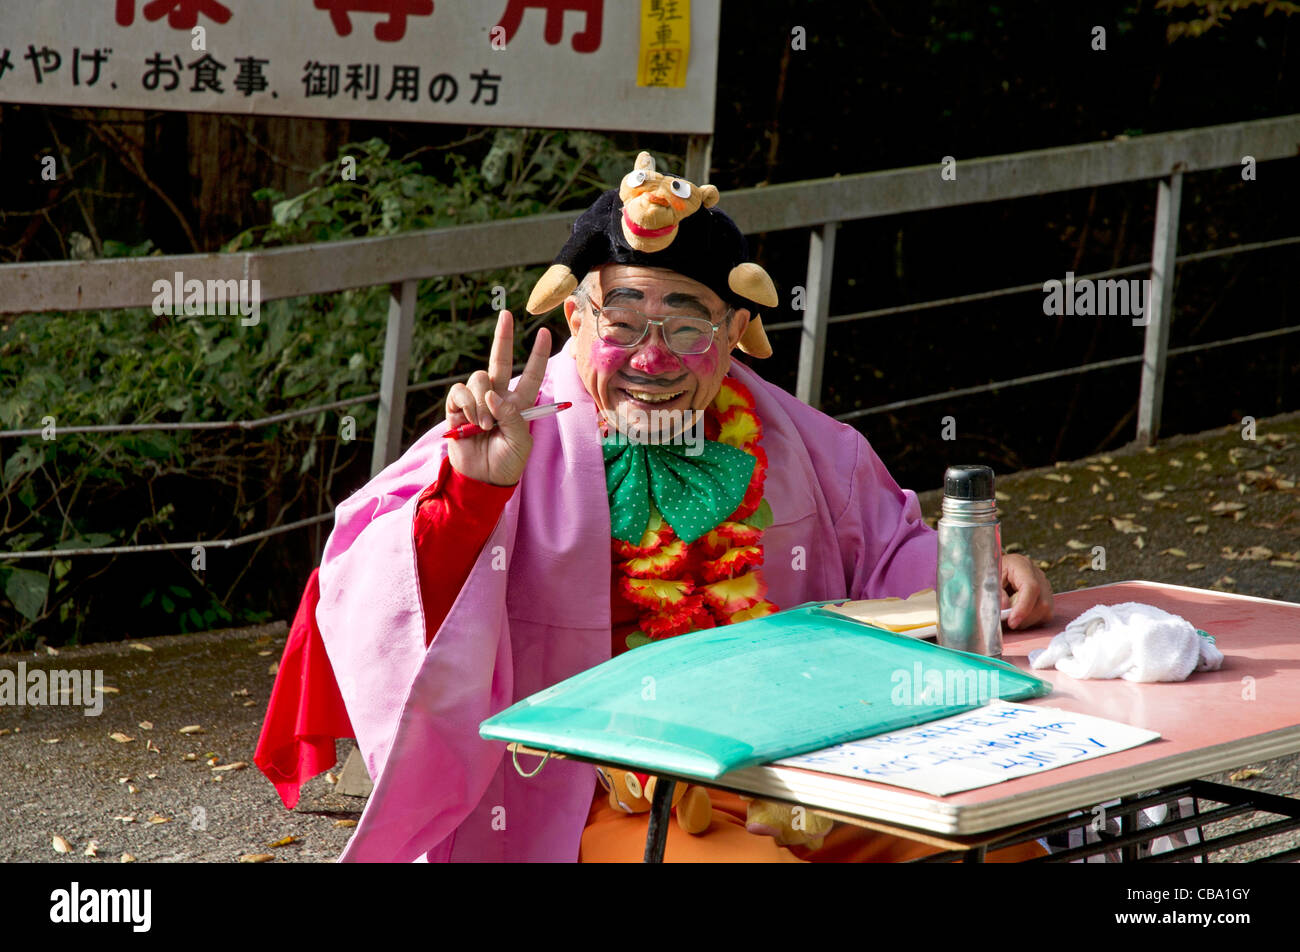 Japanese fortune teller greeting tourists in Nikko - Stock Image